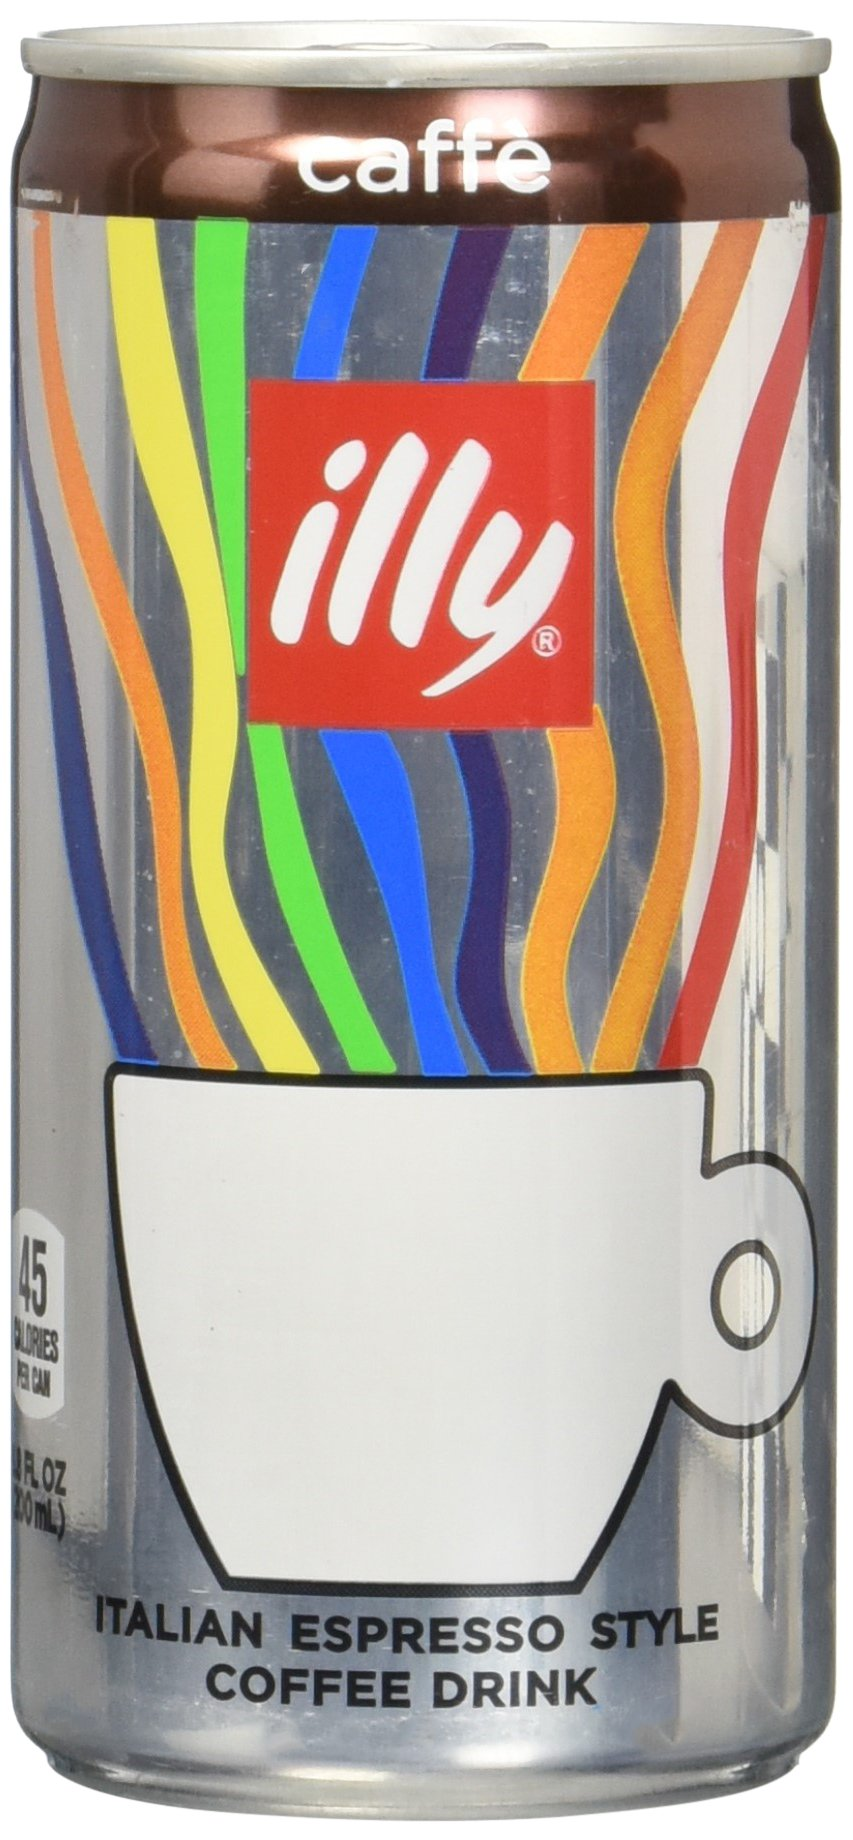 illy Ready-to-Drink Caffè, Authentic Italian Coffee, Made with 100% Arabica Coffee, All-Natural, No Preservatives, Beet Sugar, 6.8 fl oz (Pack of 12) by illy issimo